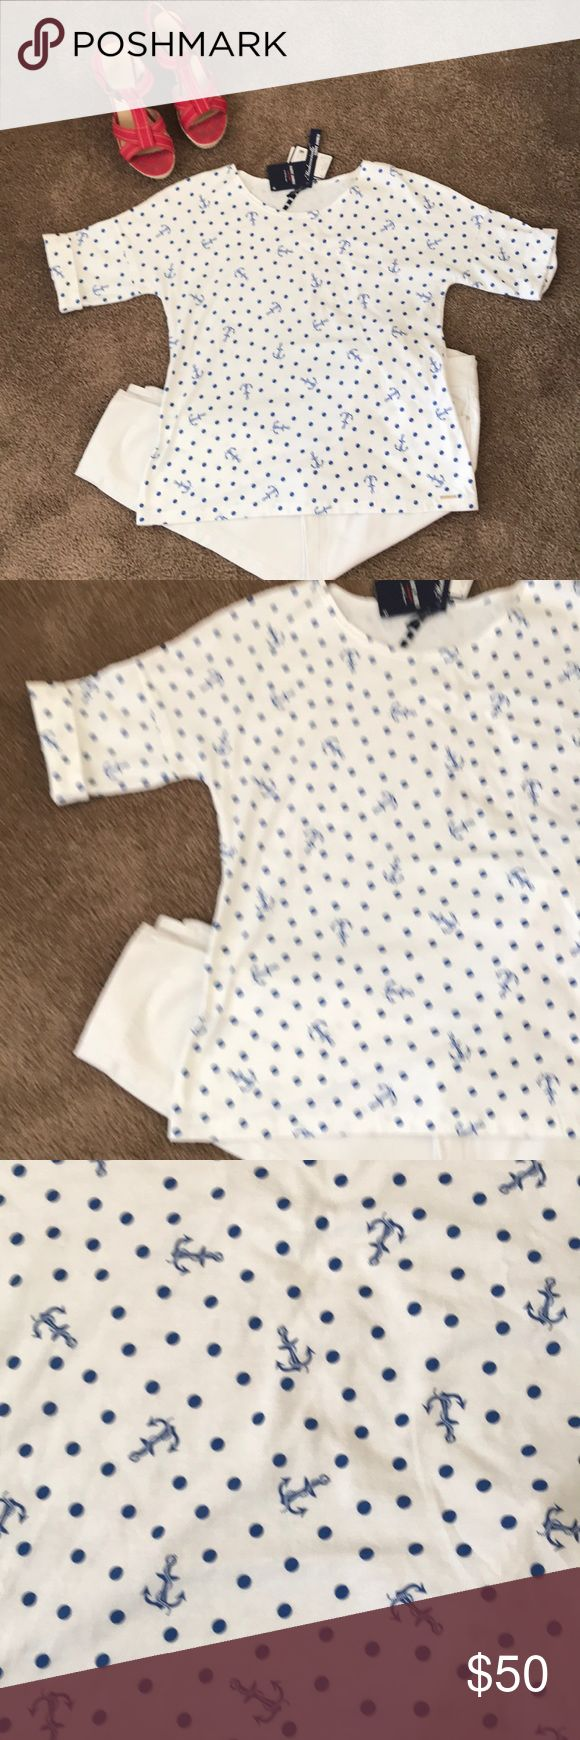 NWT Saint James blue polka dot top size 8 NWT- Saint James white short sleeve top with blue anchors and polka dots. 100% cotton. Size 8 ( fits like a medium ). Love this nautical look with white paints and heels or shorts and sandals. Perfect condition. Saint James Tops Tees - Short Sleeve